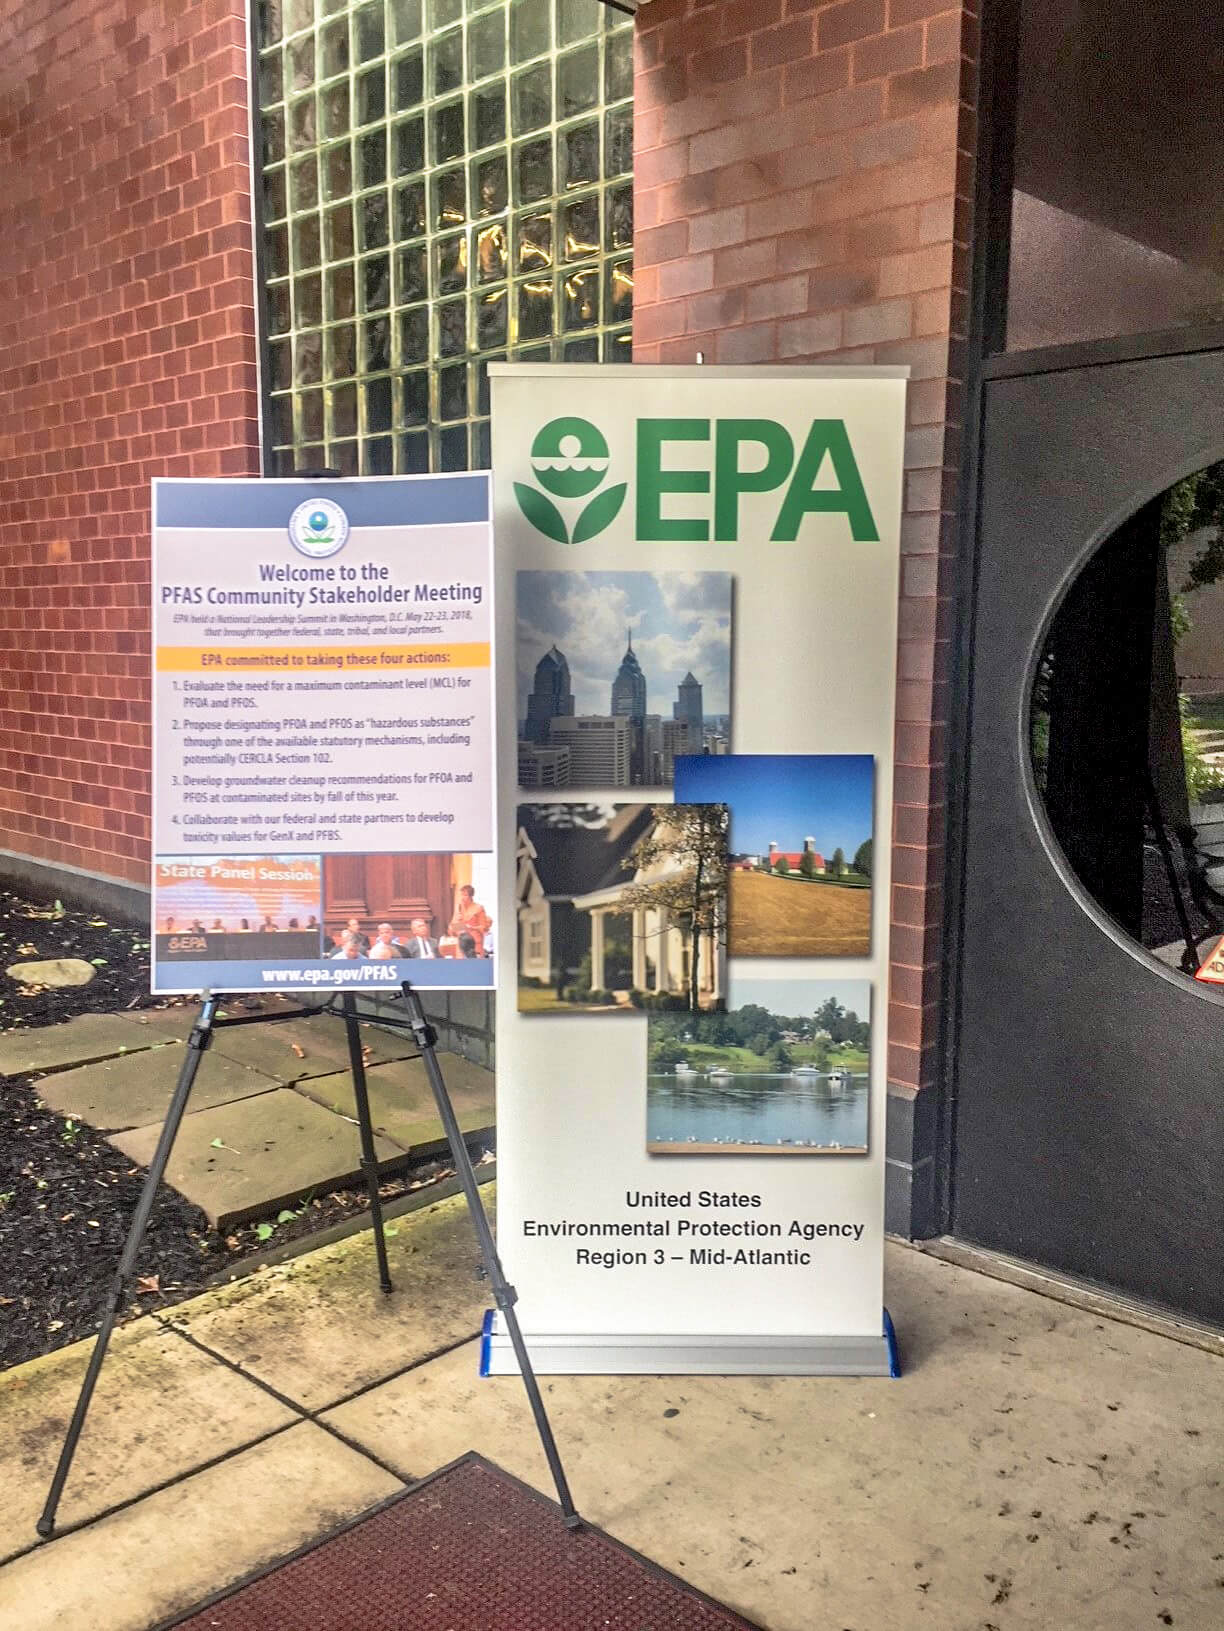 US EPA Tackles PFAS Issues at Community Engagement Event